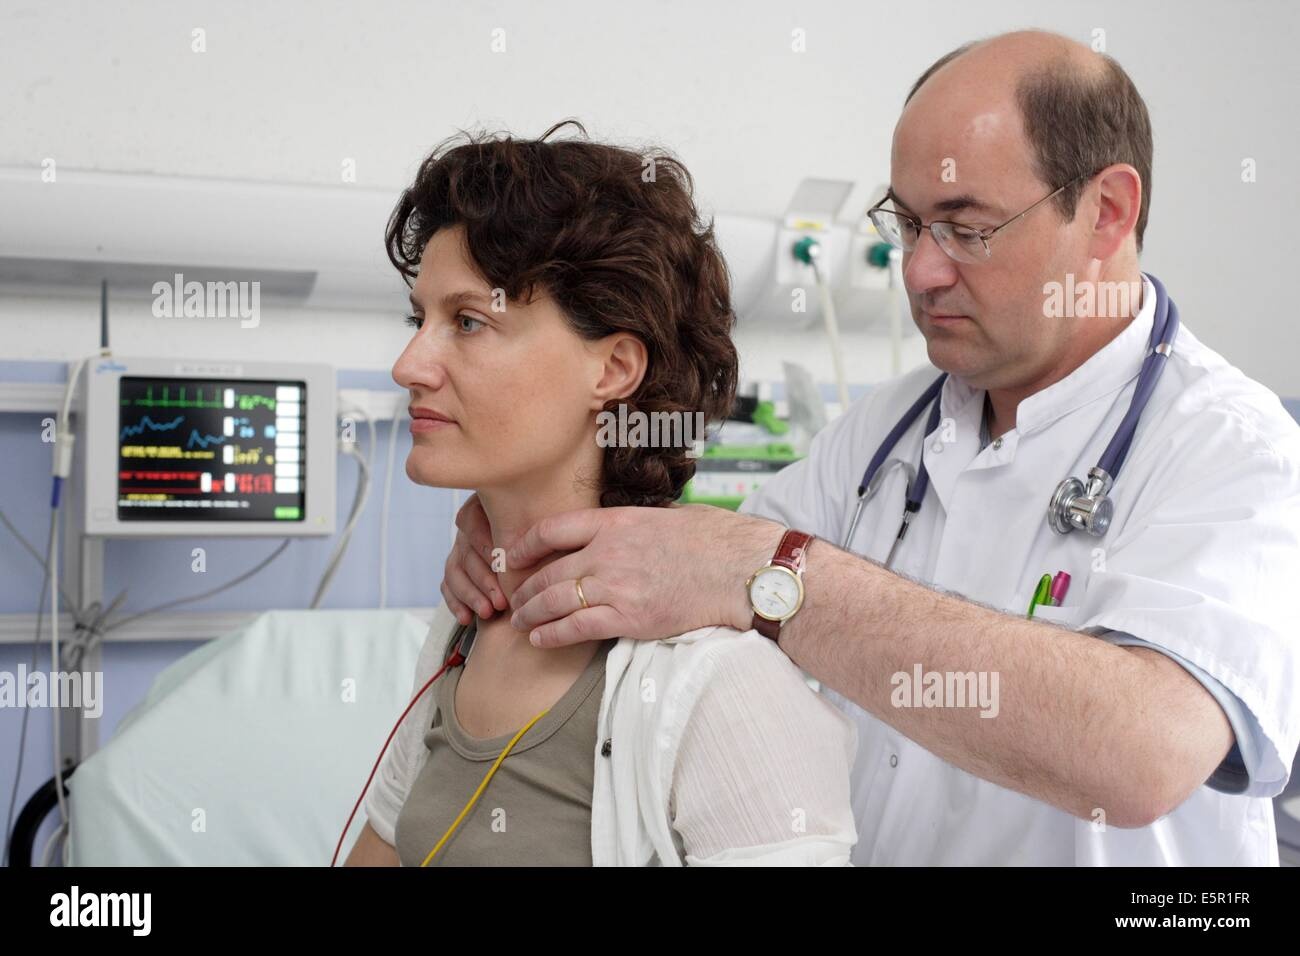 Hospital doctor examining the thyroid gland of a patient at emergency department. - Stock Image